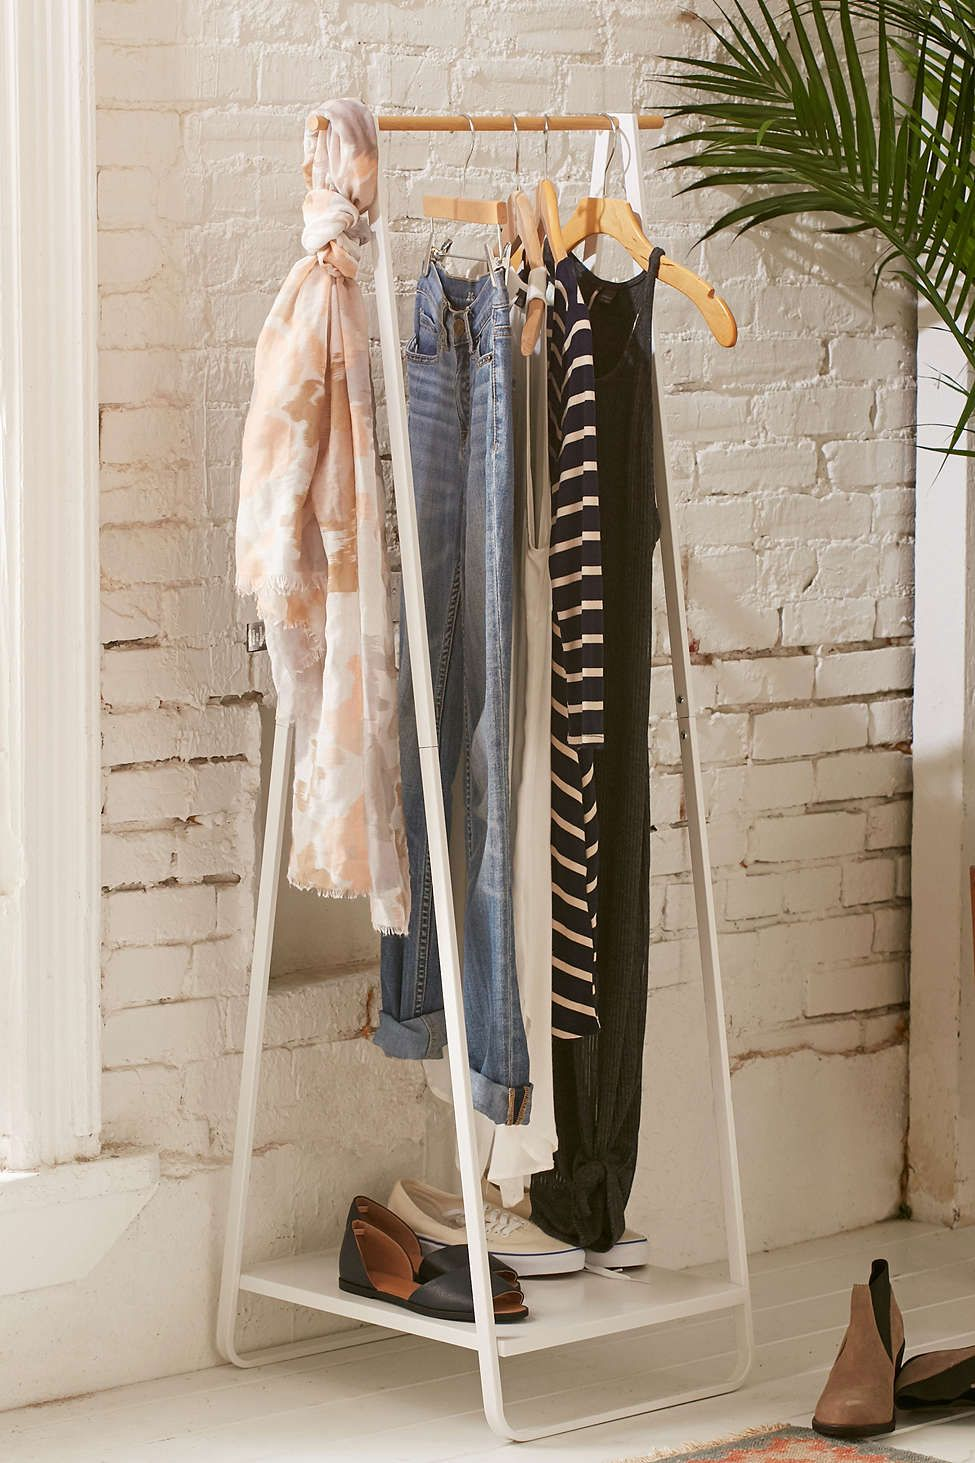 Uncategorized The Clothes Rack tower clothing rack r by the door for coats or restroom clothes